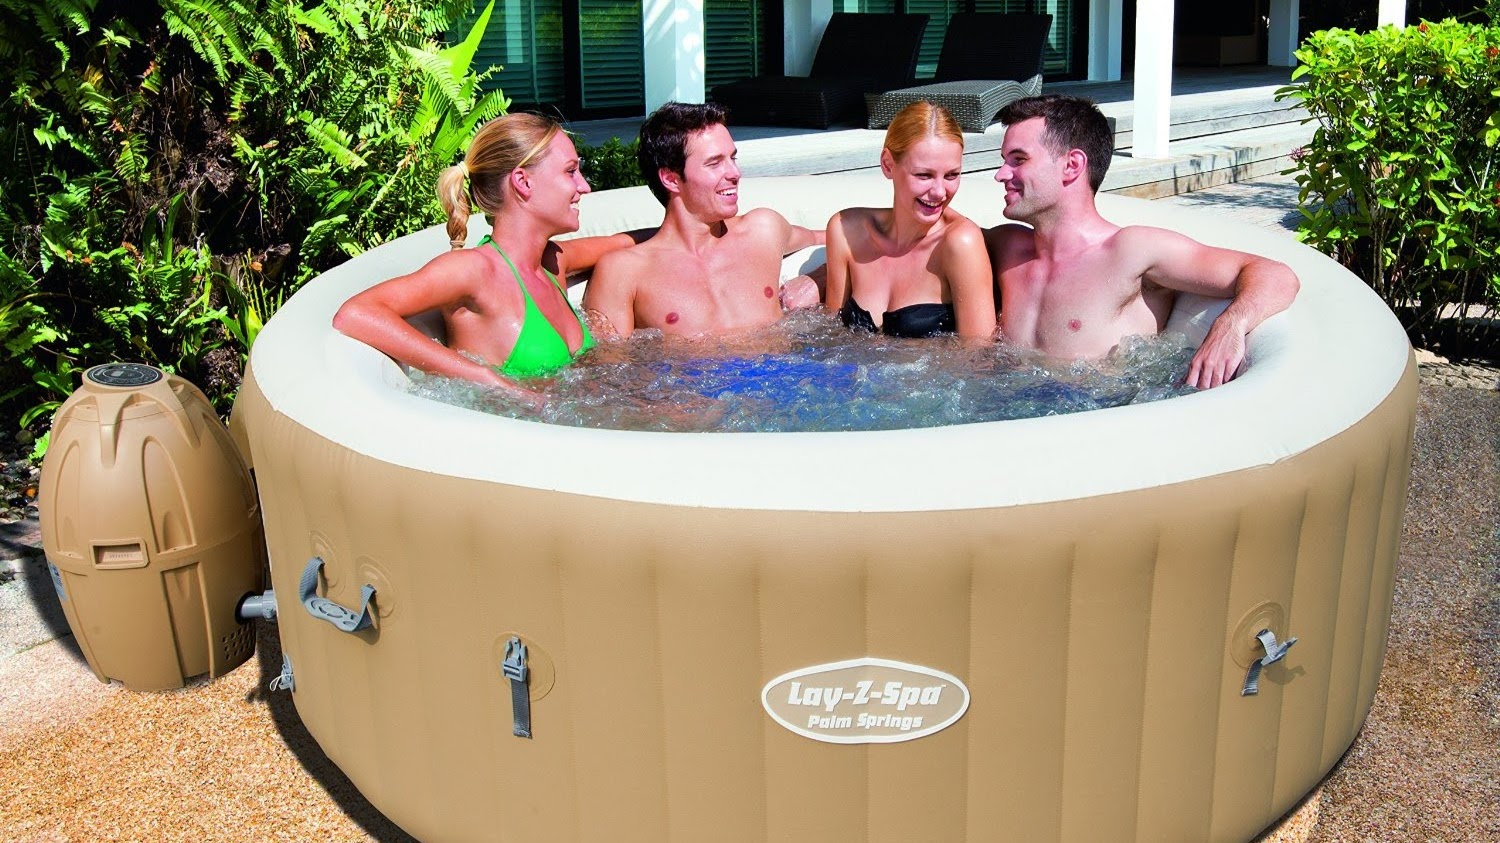 Best hot tubs 2018: the hot and wet spa essential for the swinging set | T3